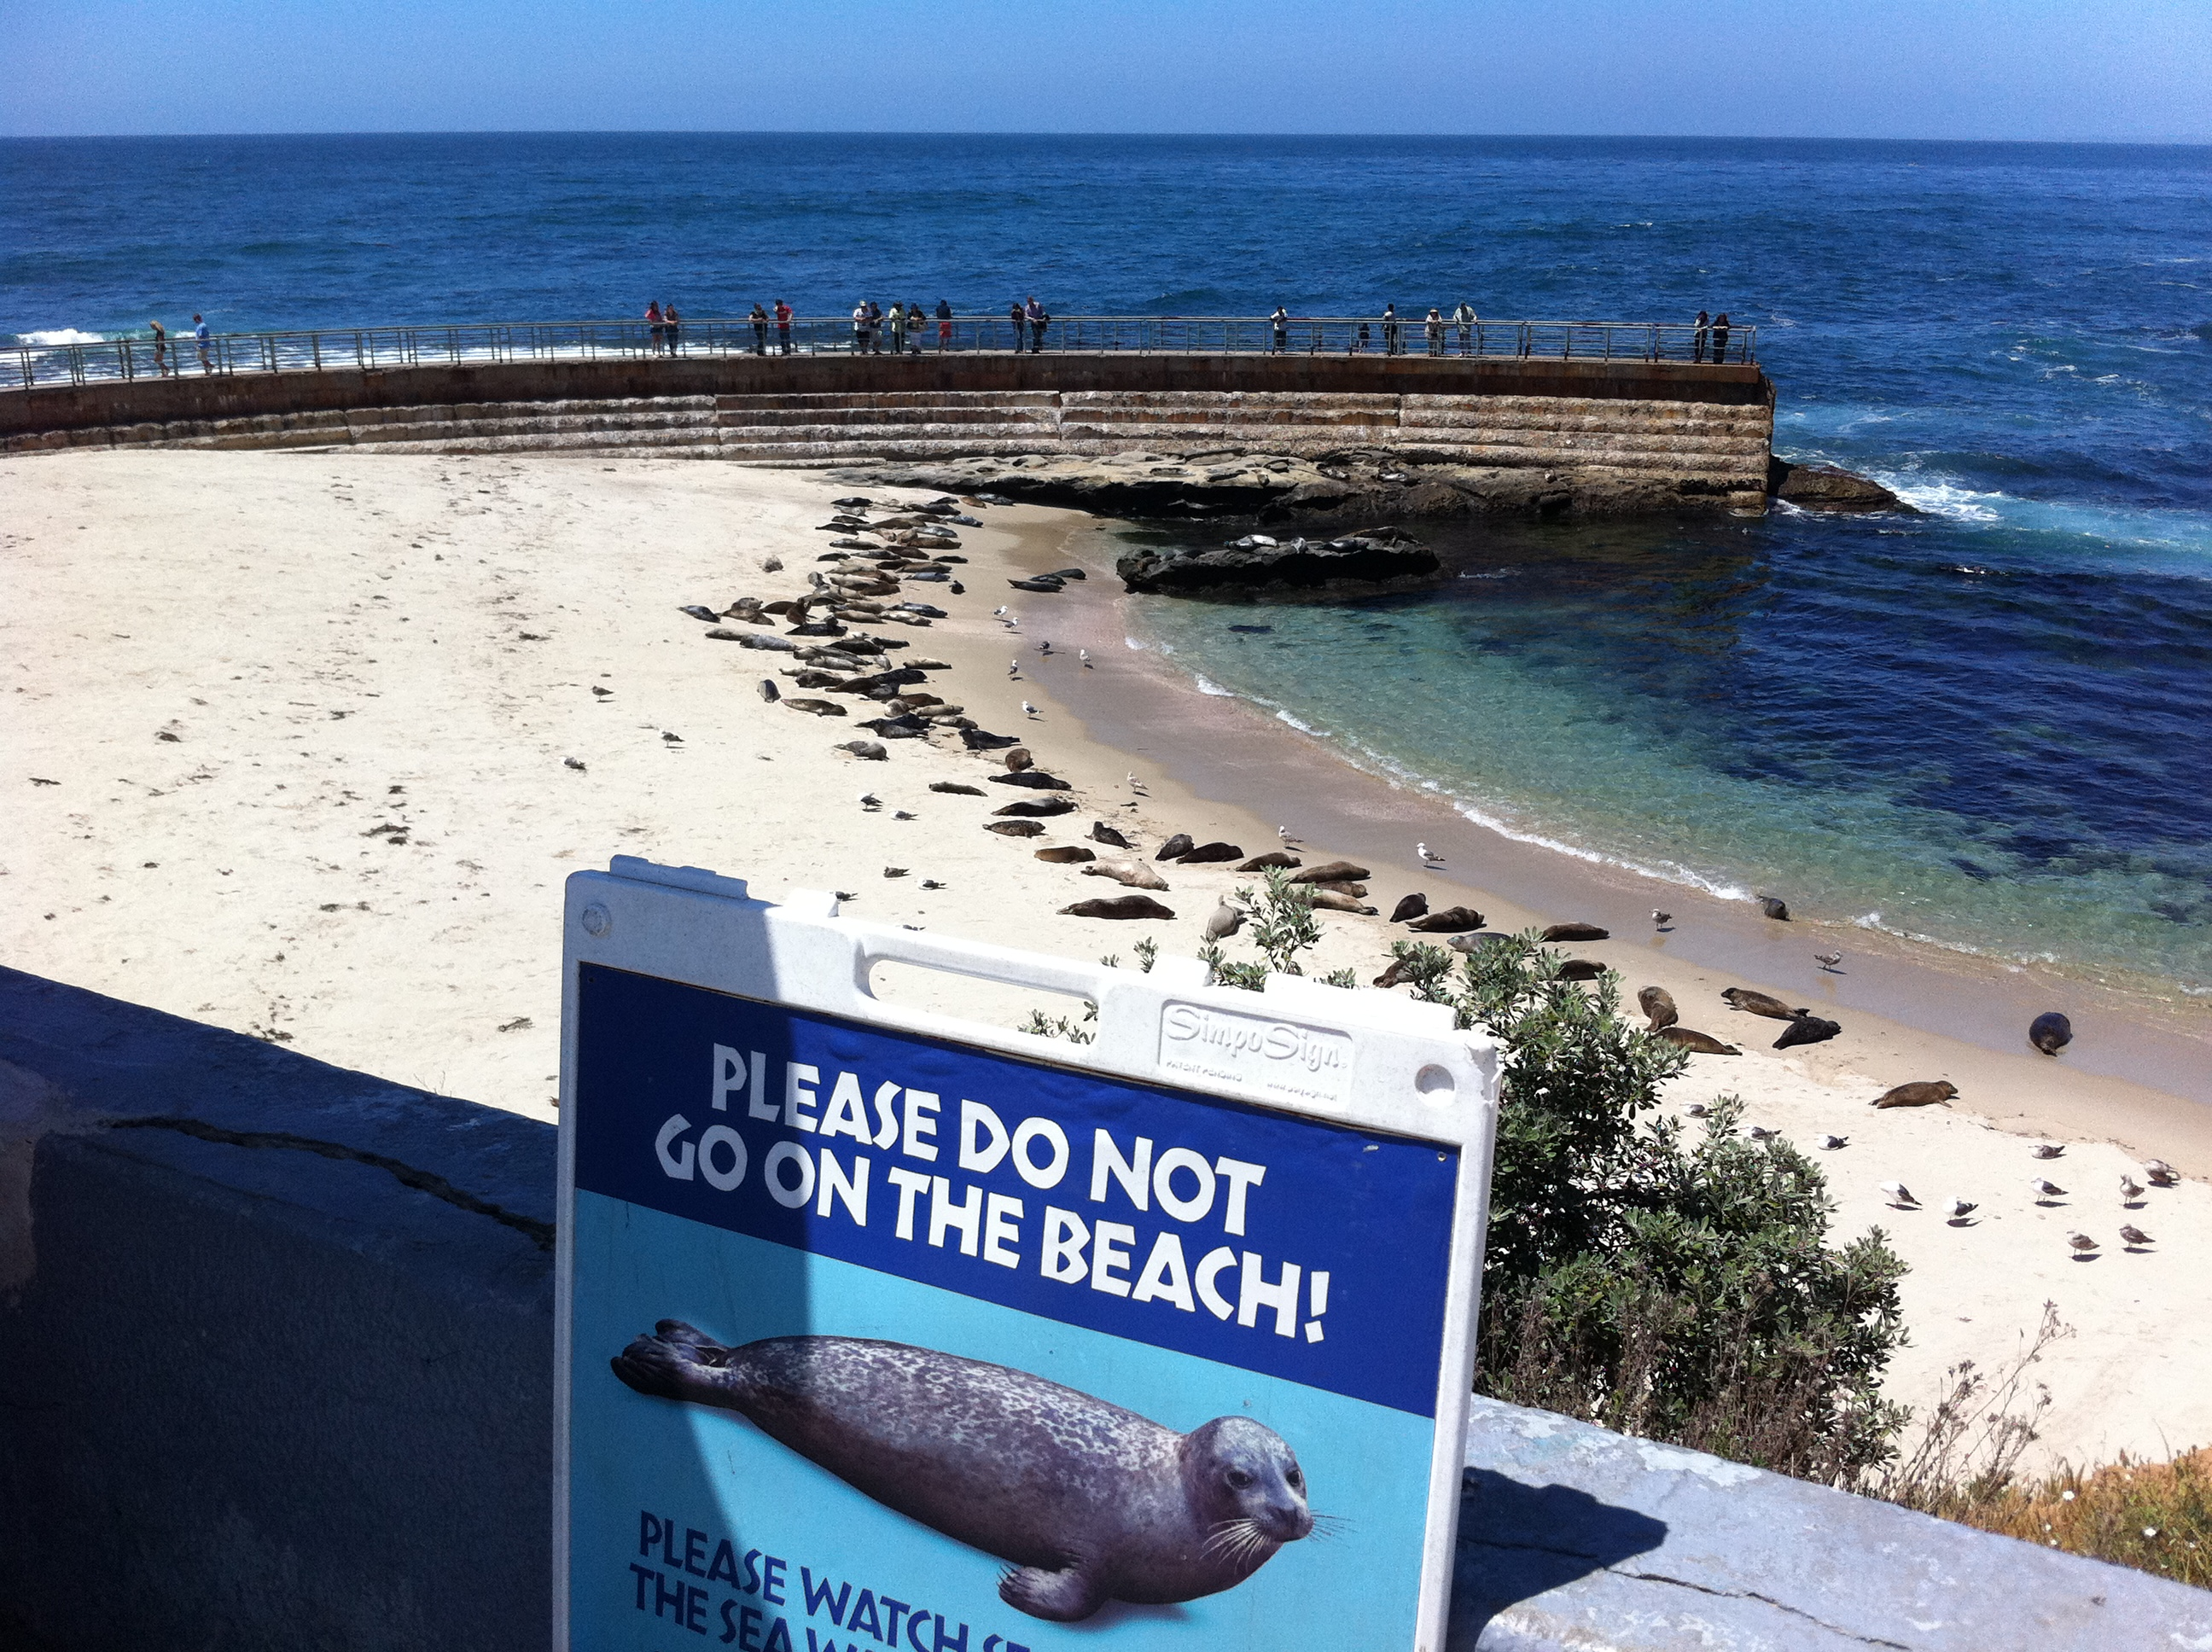 La Jolla Children S Pool Rope Meant To Protect Seals Removed Today Kpbs